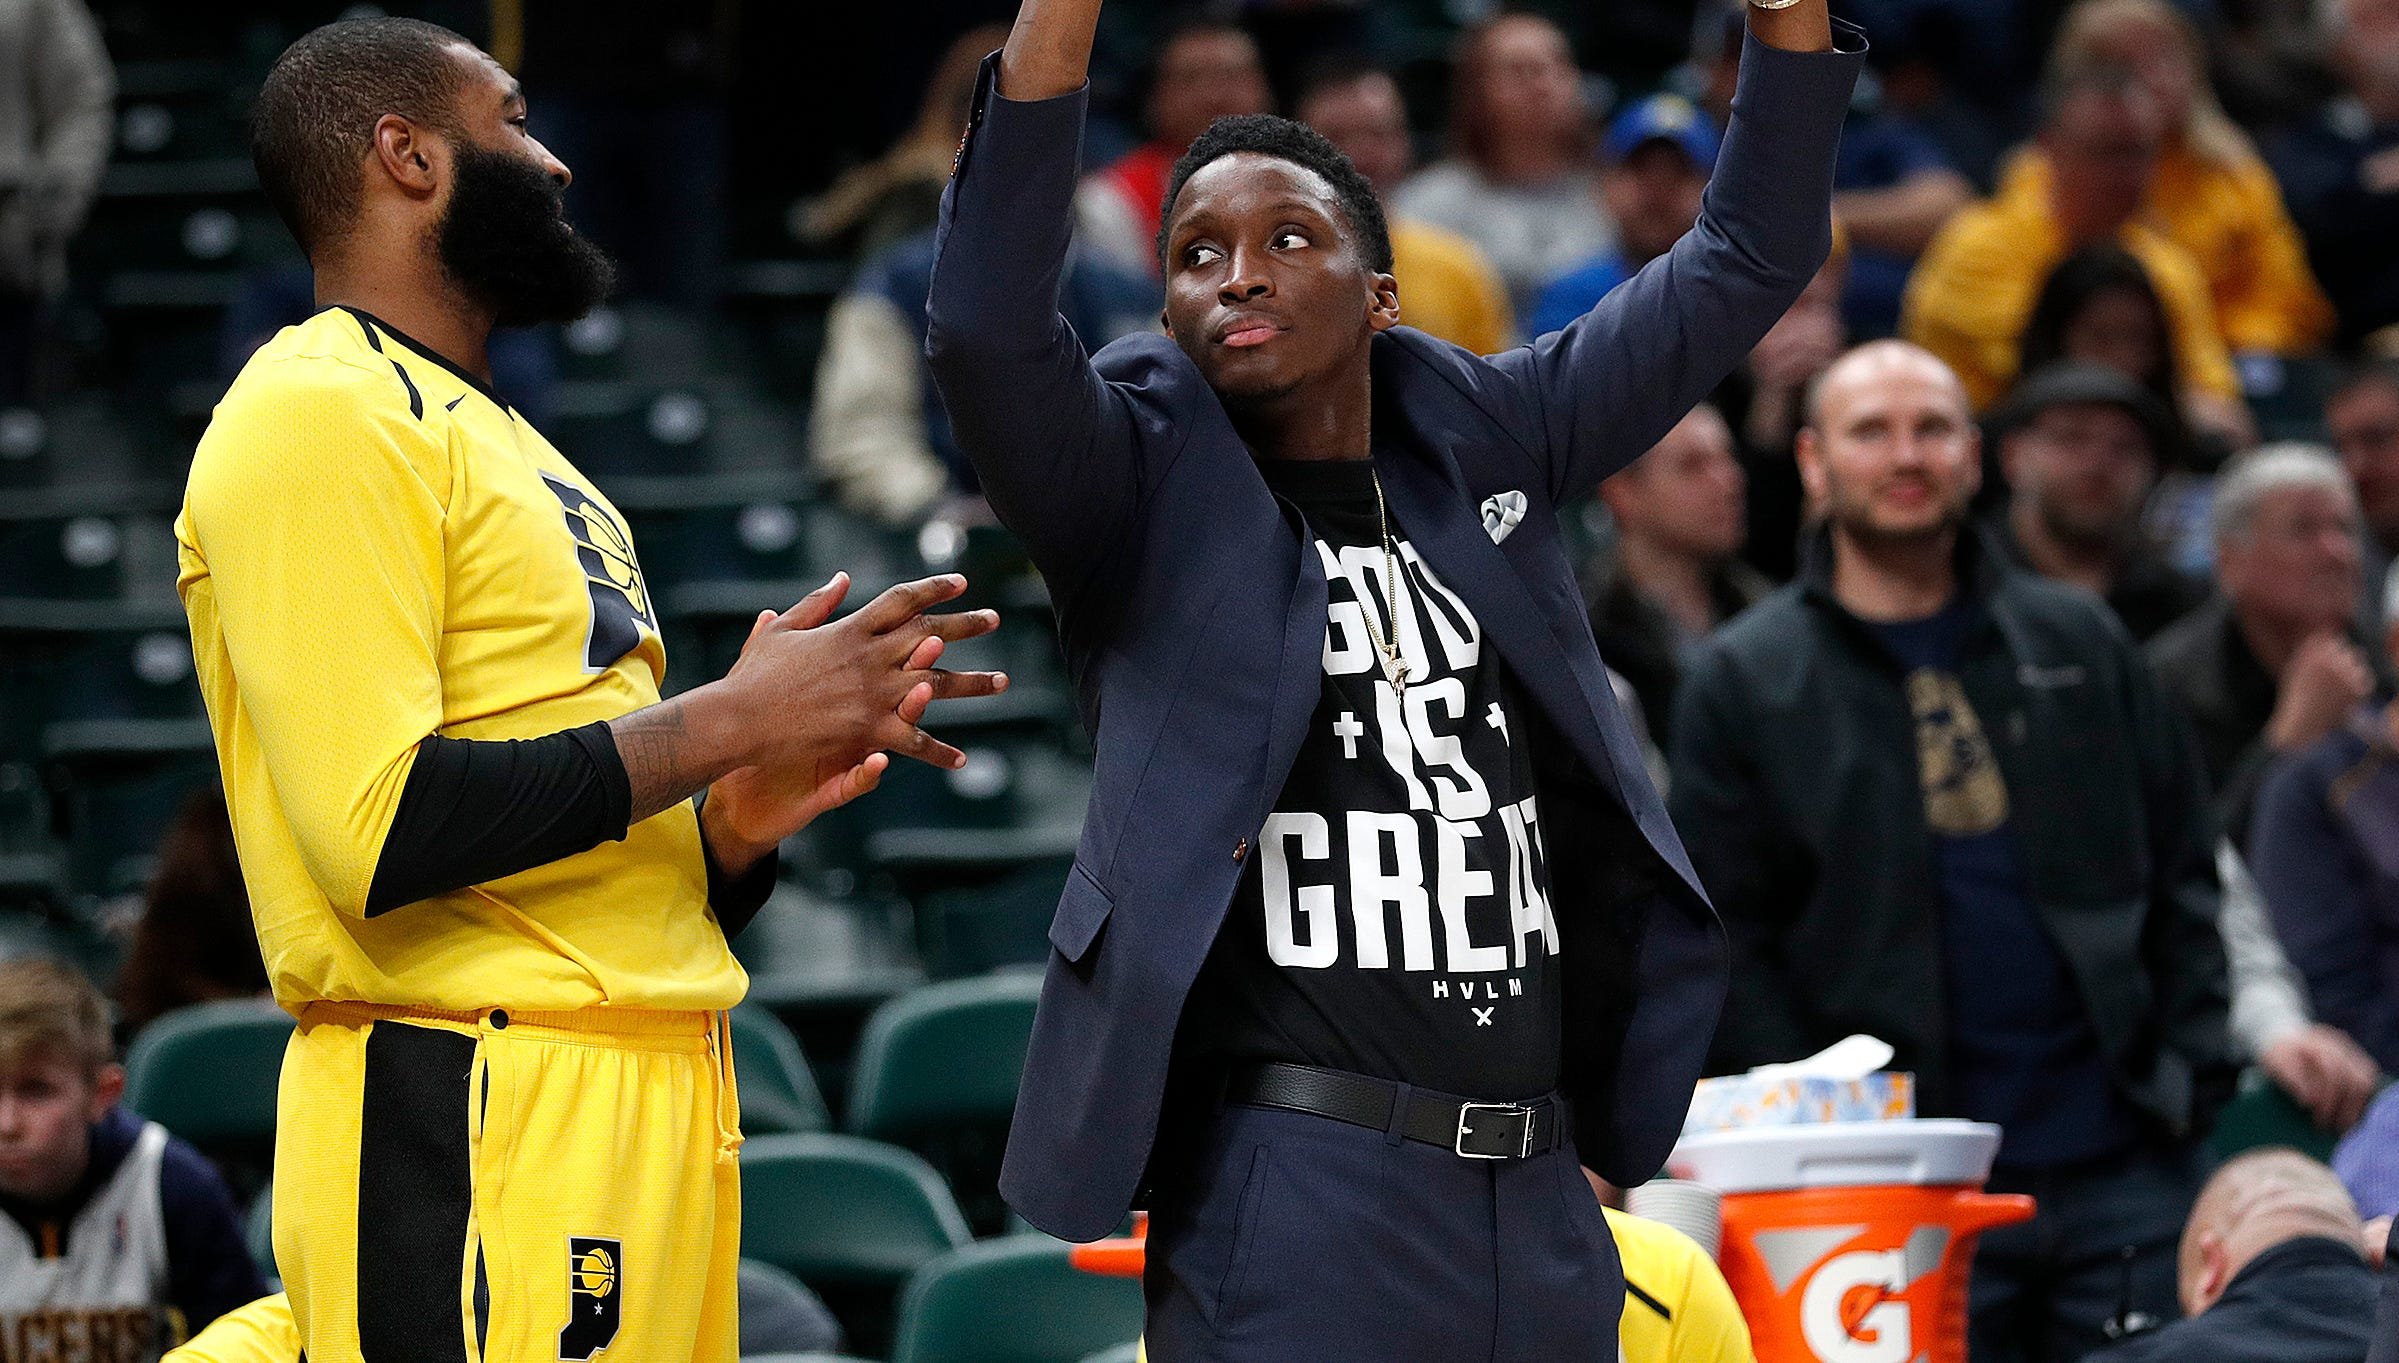 Indiana Pacers guard Victor Oladipo (4) cheers on  his teammates in the second half of their game at Bankers Life Fieldhouse on Tuesday, Dec. 4, 2018. The Indiana Pacers defeated the Chicago Bulls 96-90.